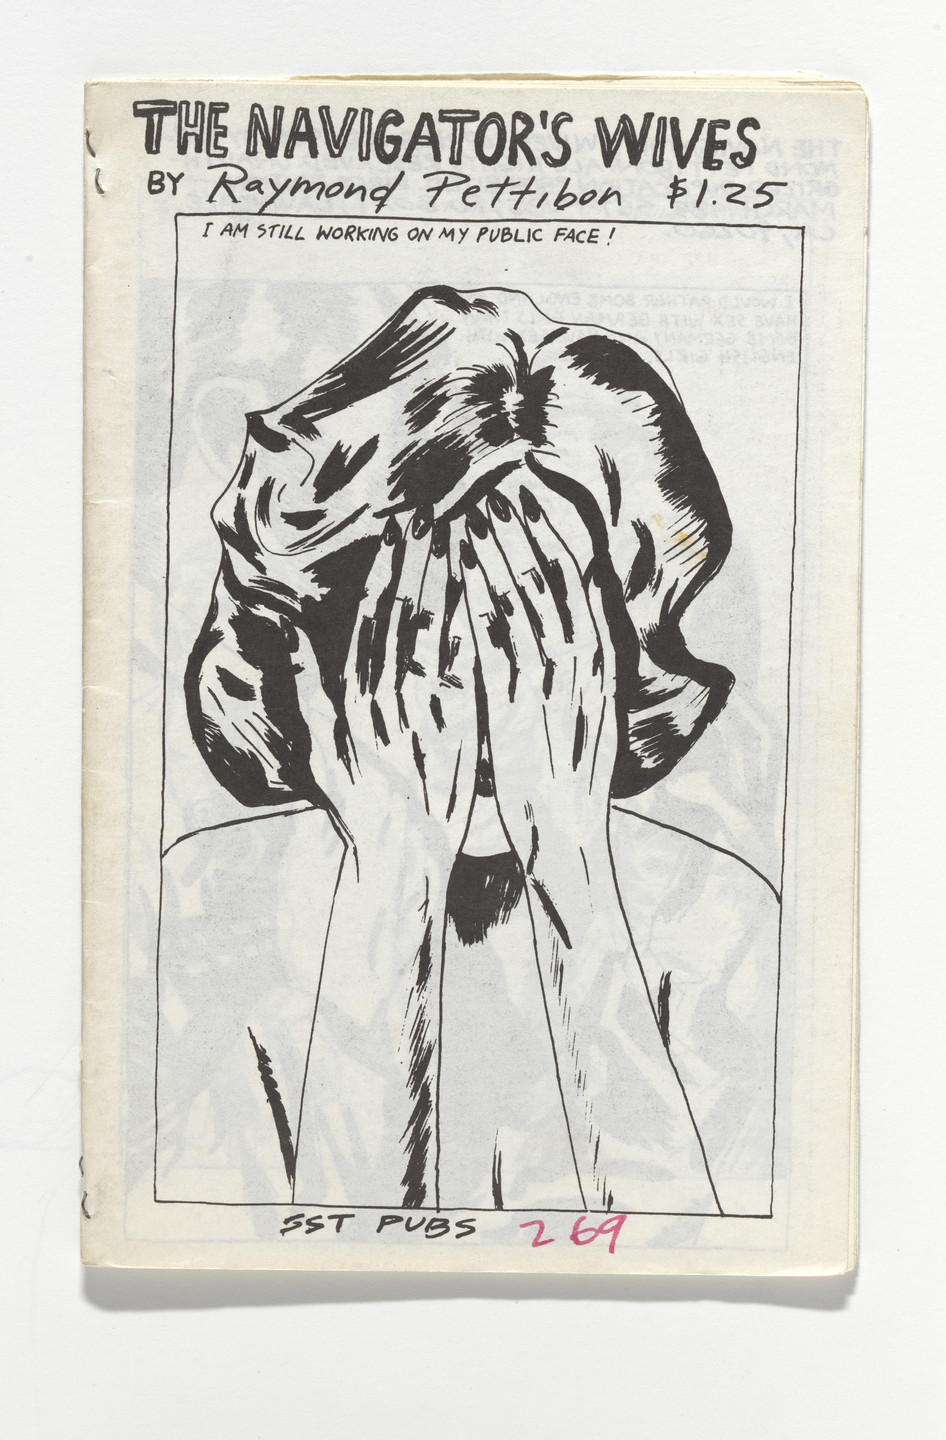 Raymond Pettibon. The Navigator's Wives. 1985